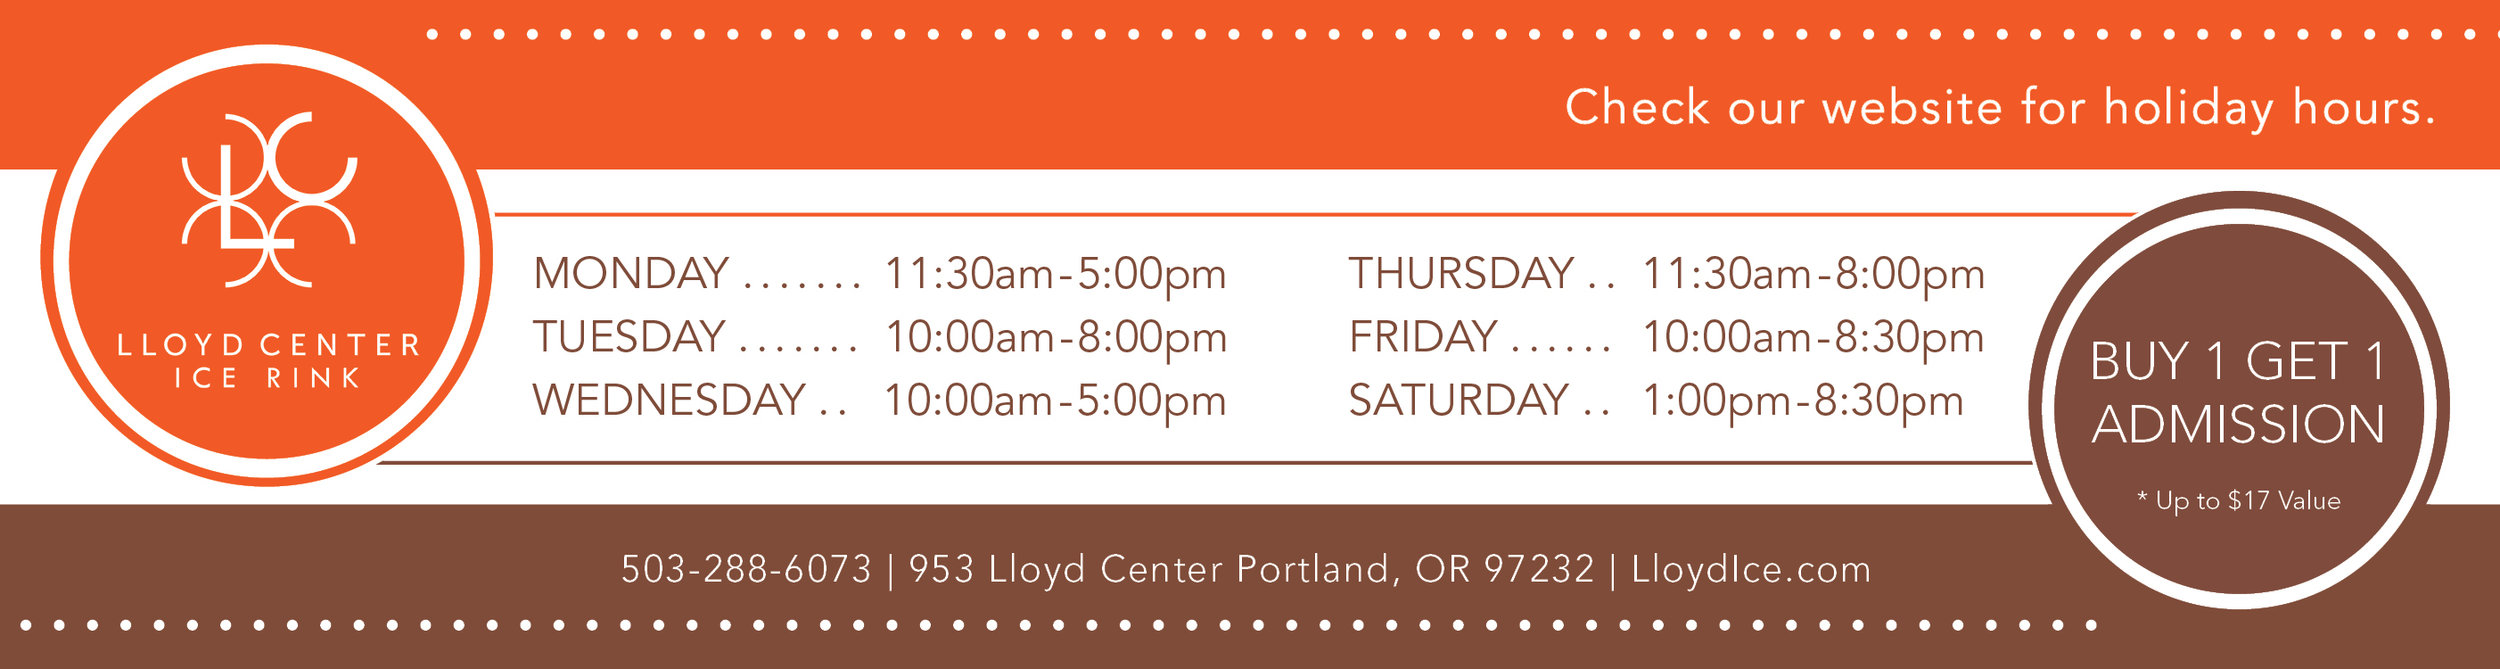 Lloyd Center Ice Rink Thematic Guide Email Ad Oct 2019 PDX.jpg